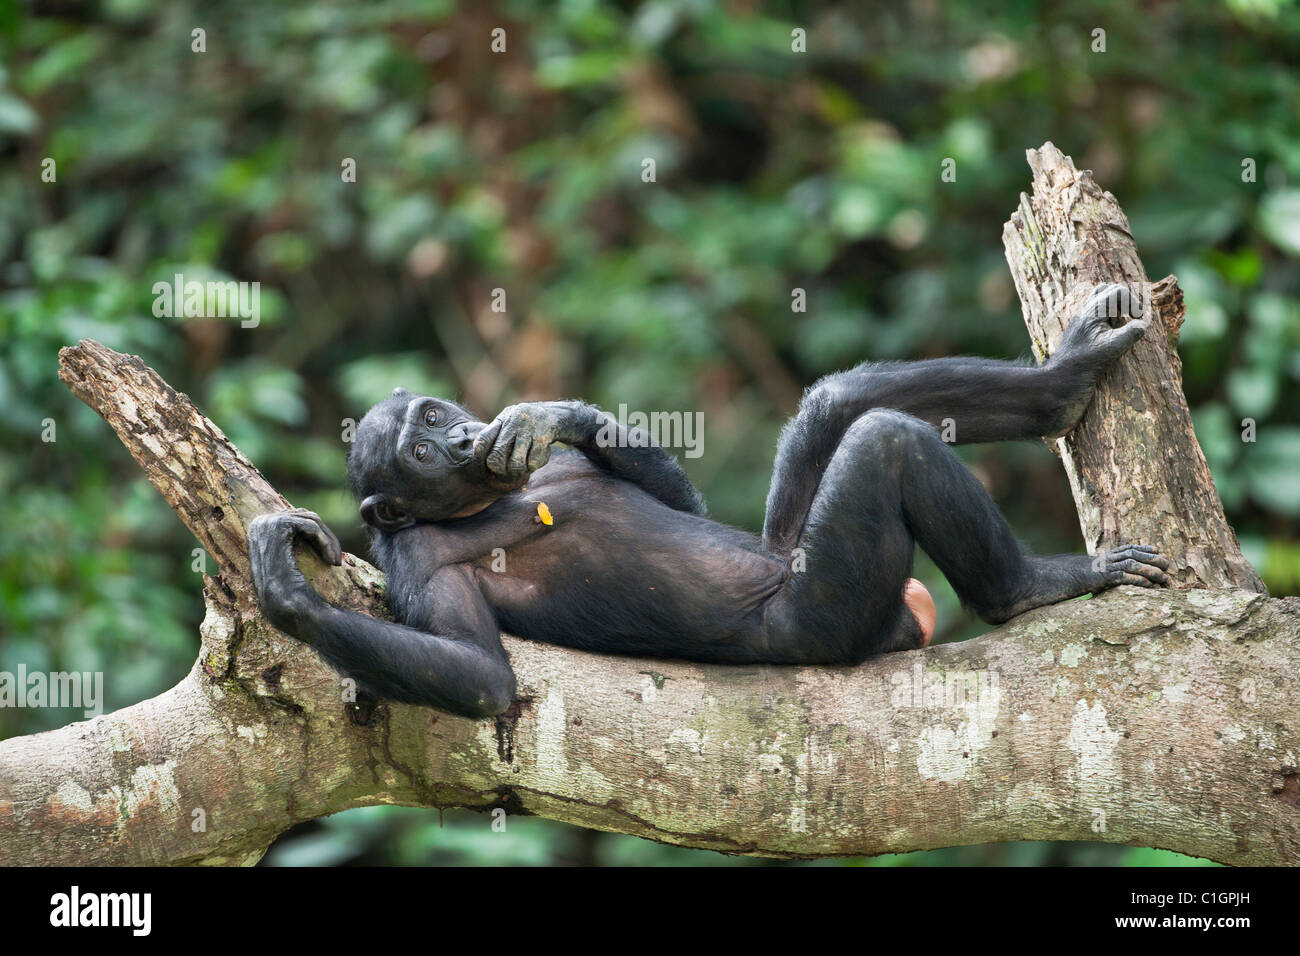 Bonobo Chimpanzee at the Sanctuary Lola Ya Bonobo, Democratic Republic of the Congo - Stock Image